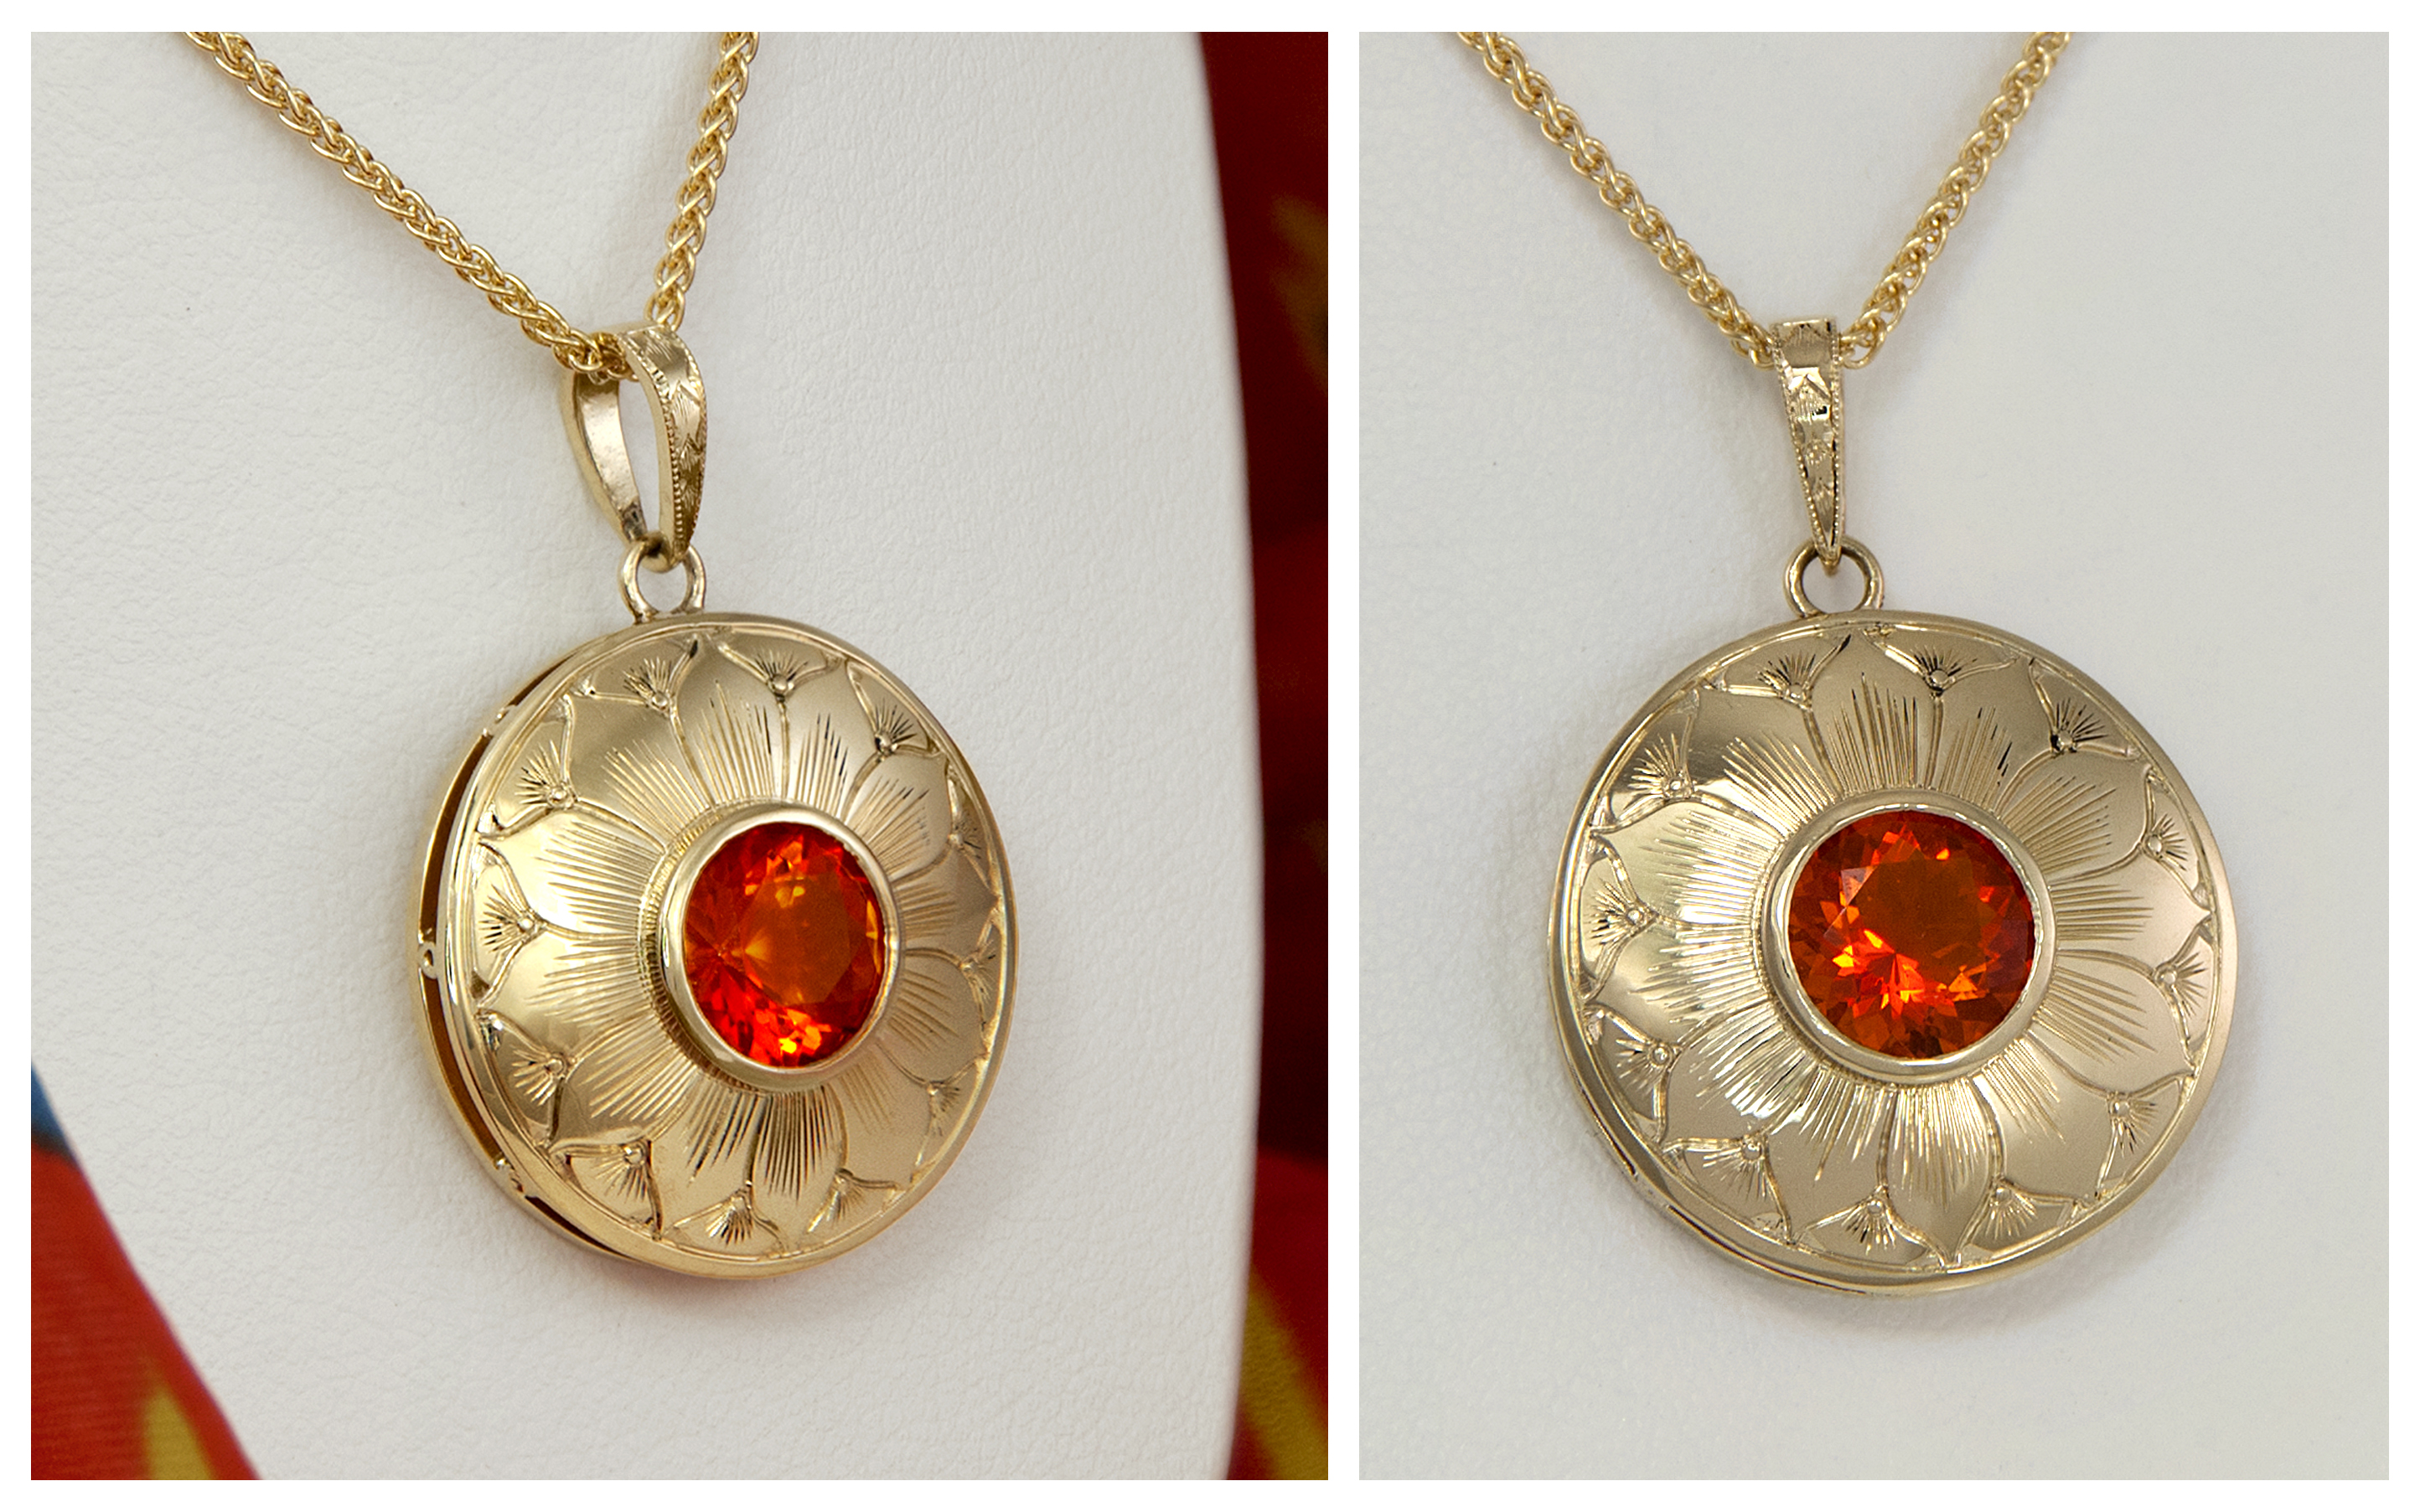 14KY Hand Engraved Mexican Fire Opal Pendant